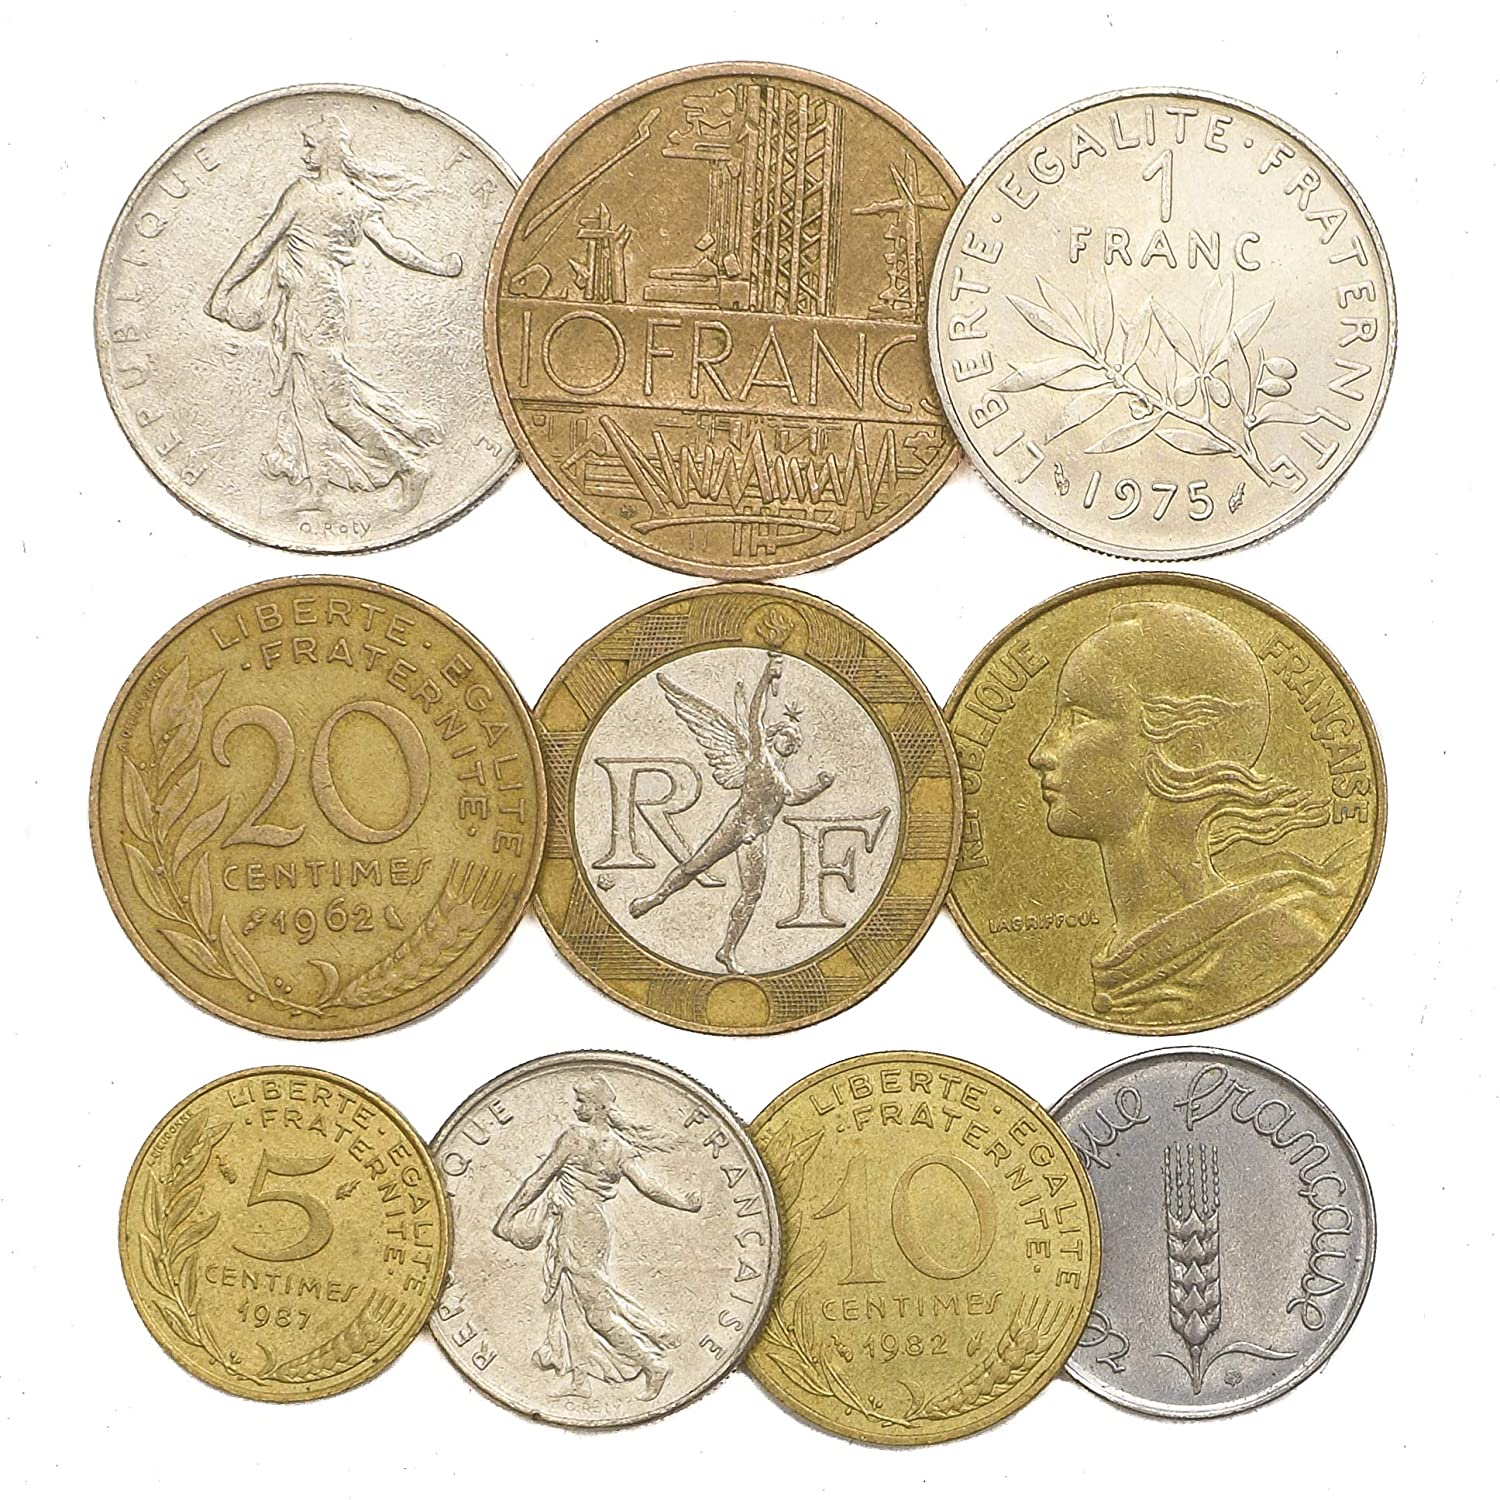 10 Old Coins From France 10 French Coins Francs Centimes 1959 2001 Pre Euro European Coins Perfect Choice For Your Coin Bank Coin Holders And